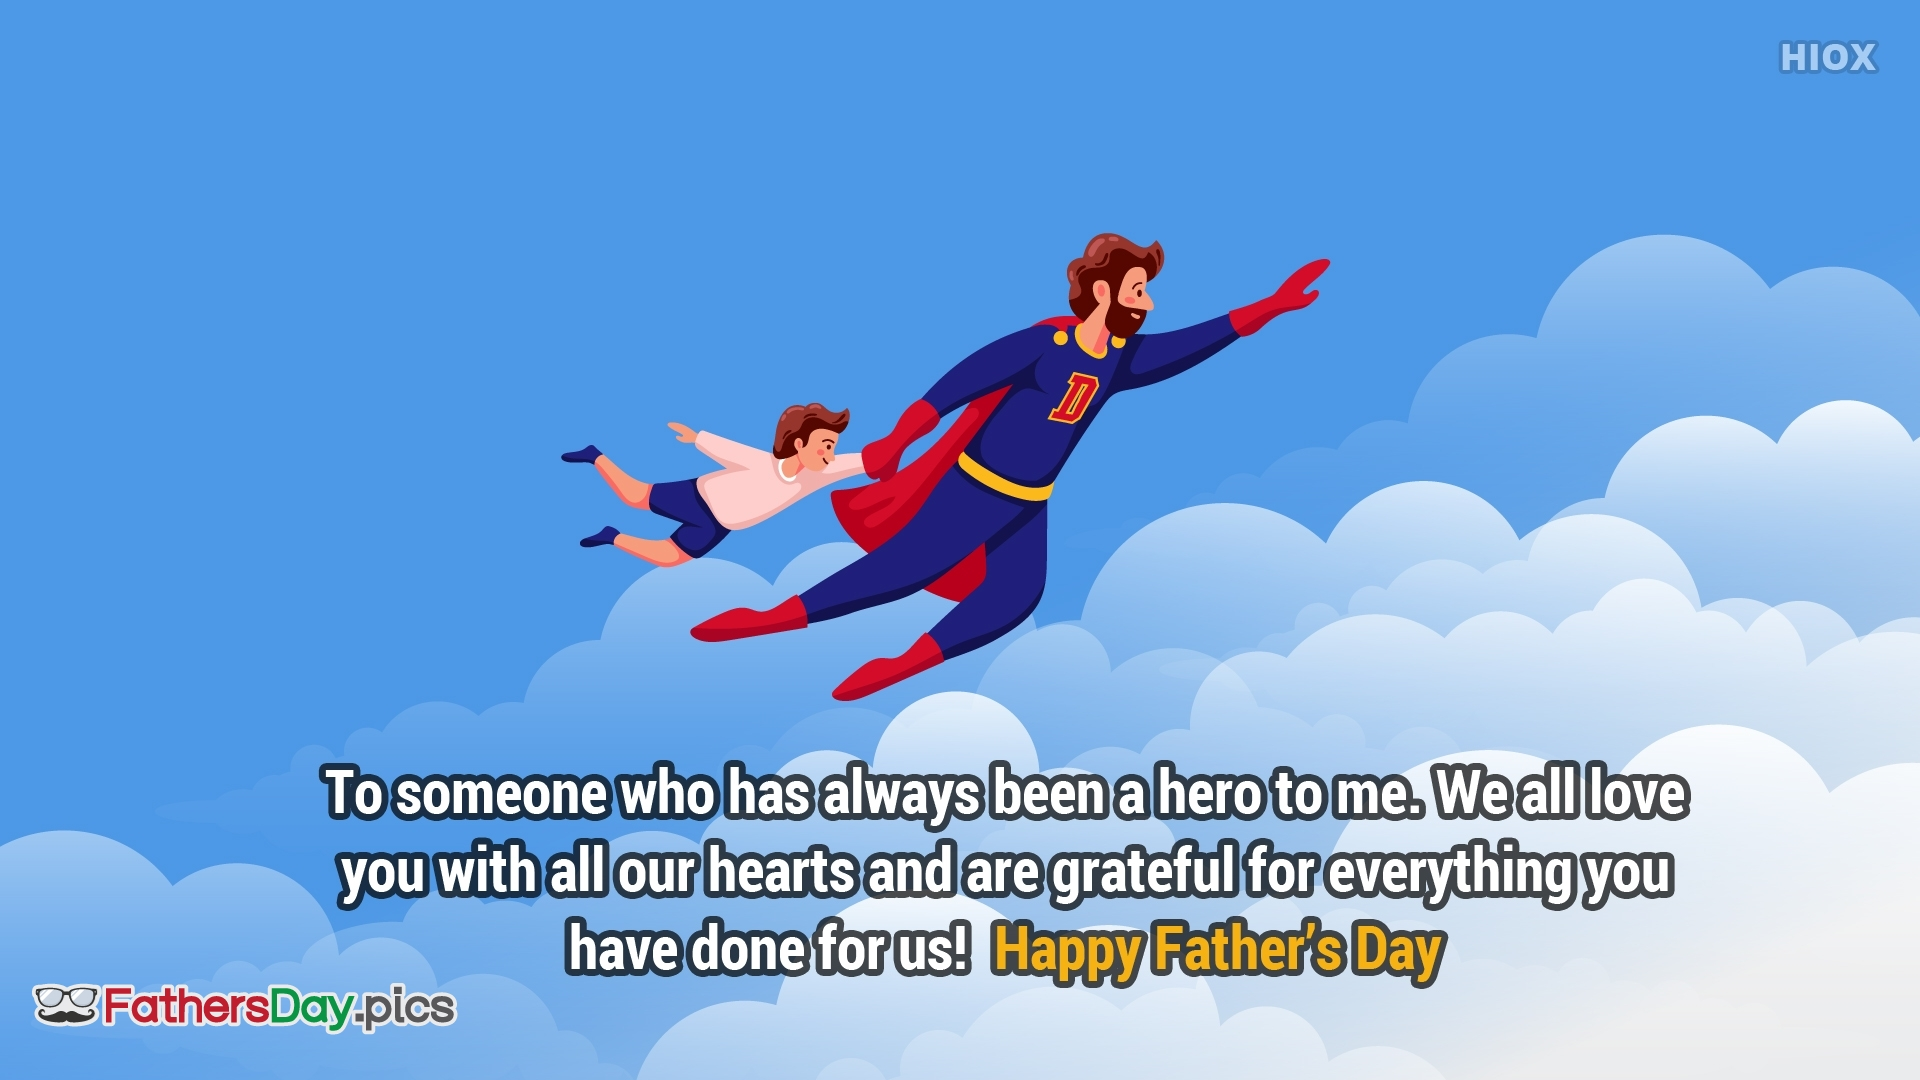 Happy Fathers Day Message to Superhero Dad